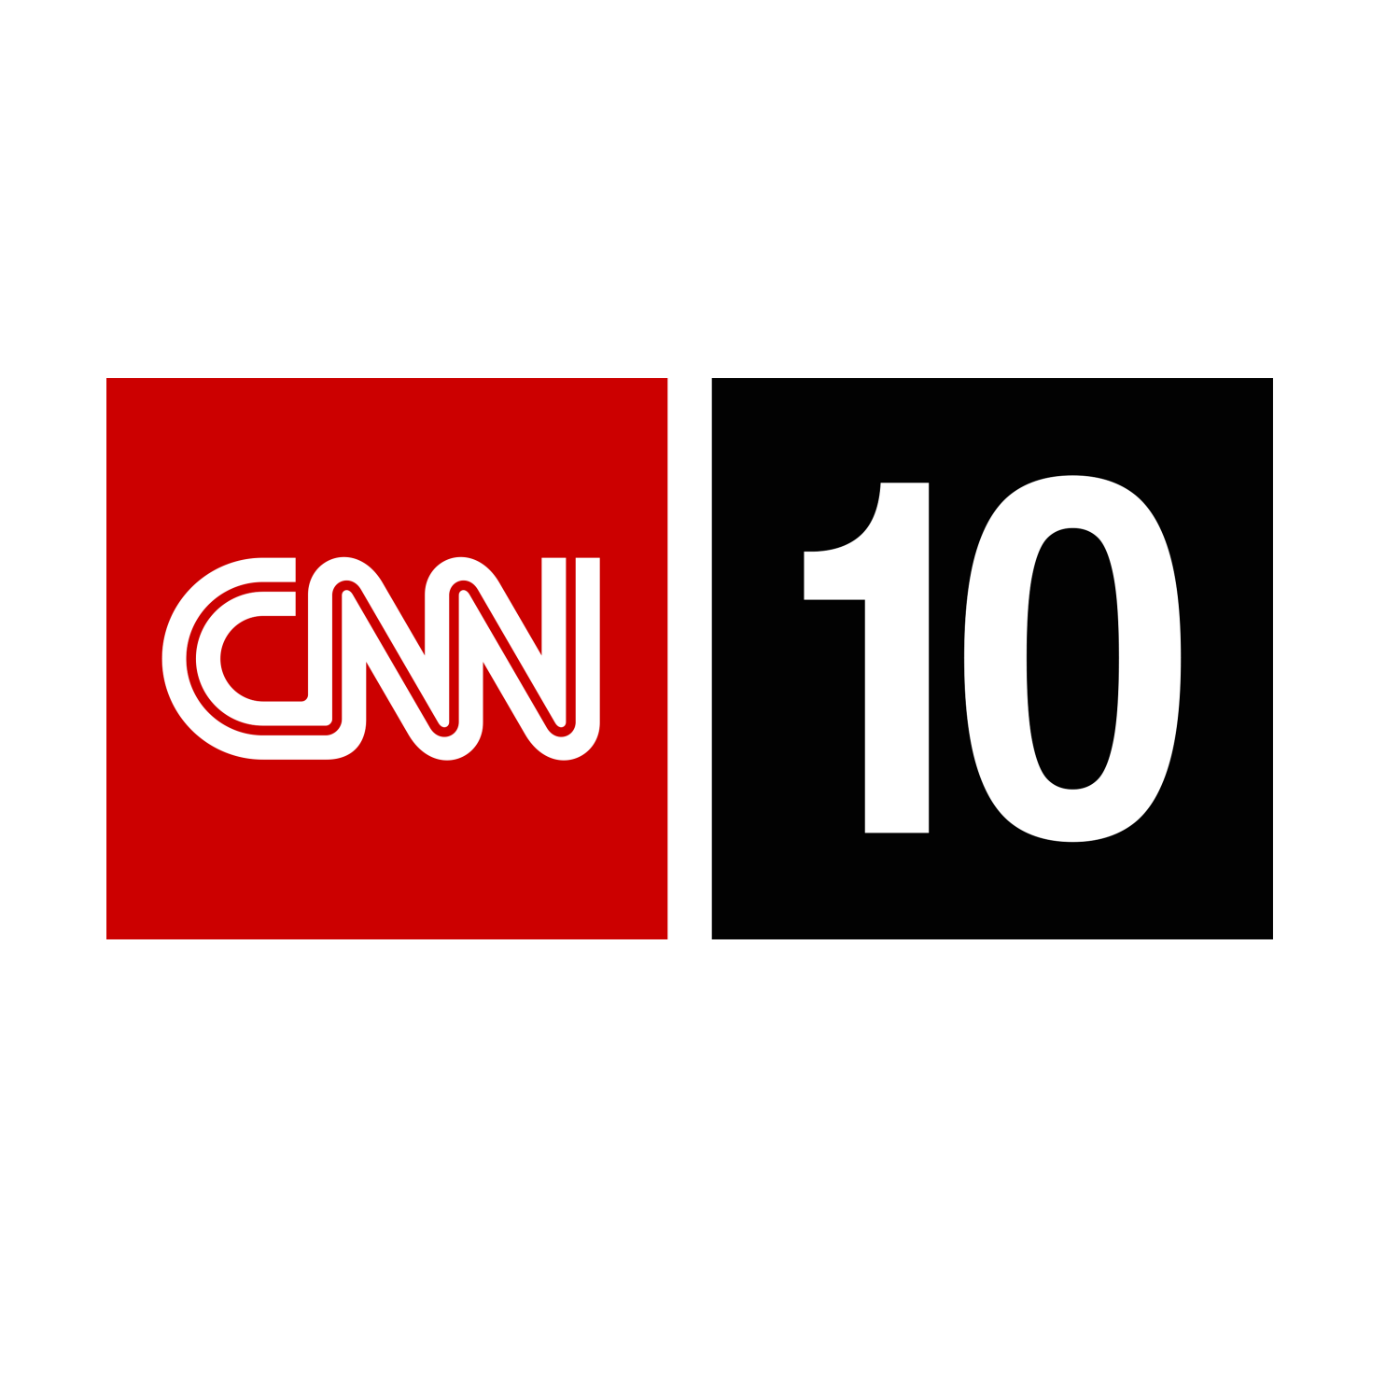 CNN Student News - January 18, 2013